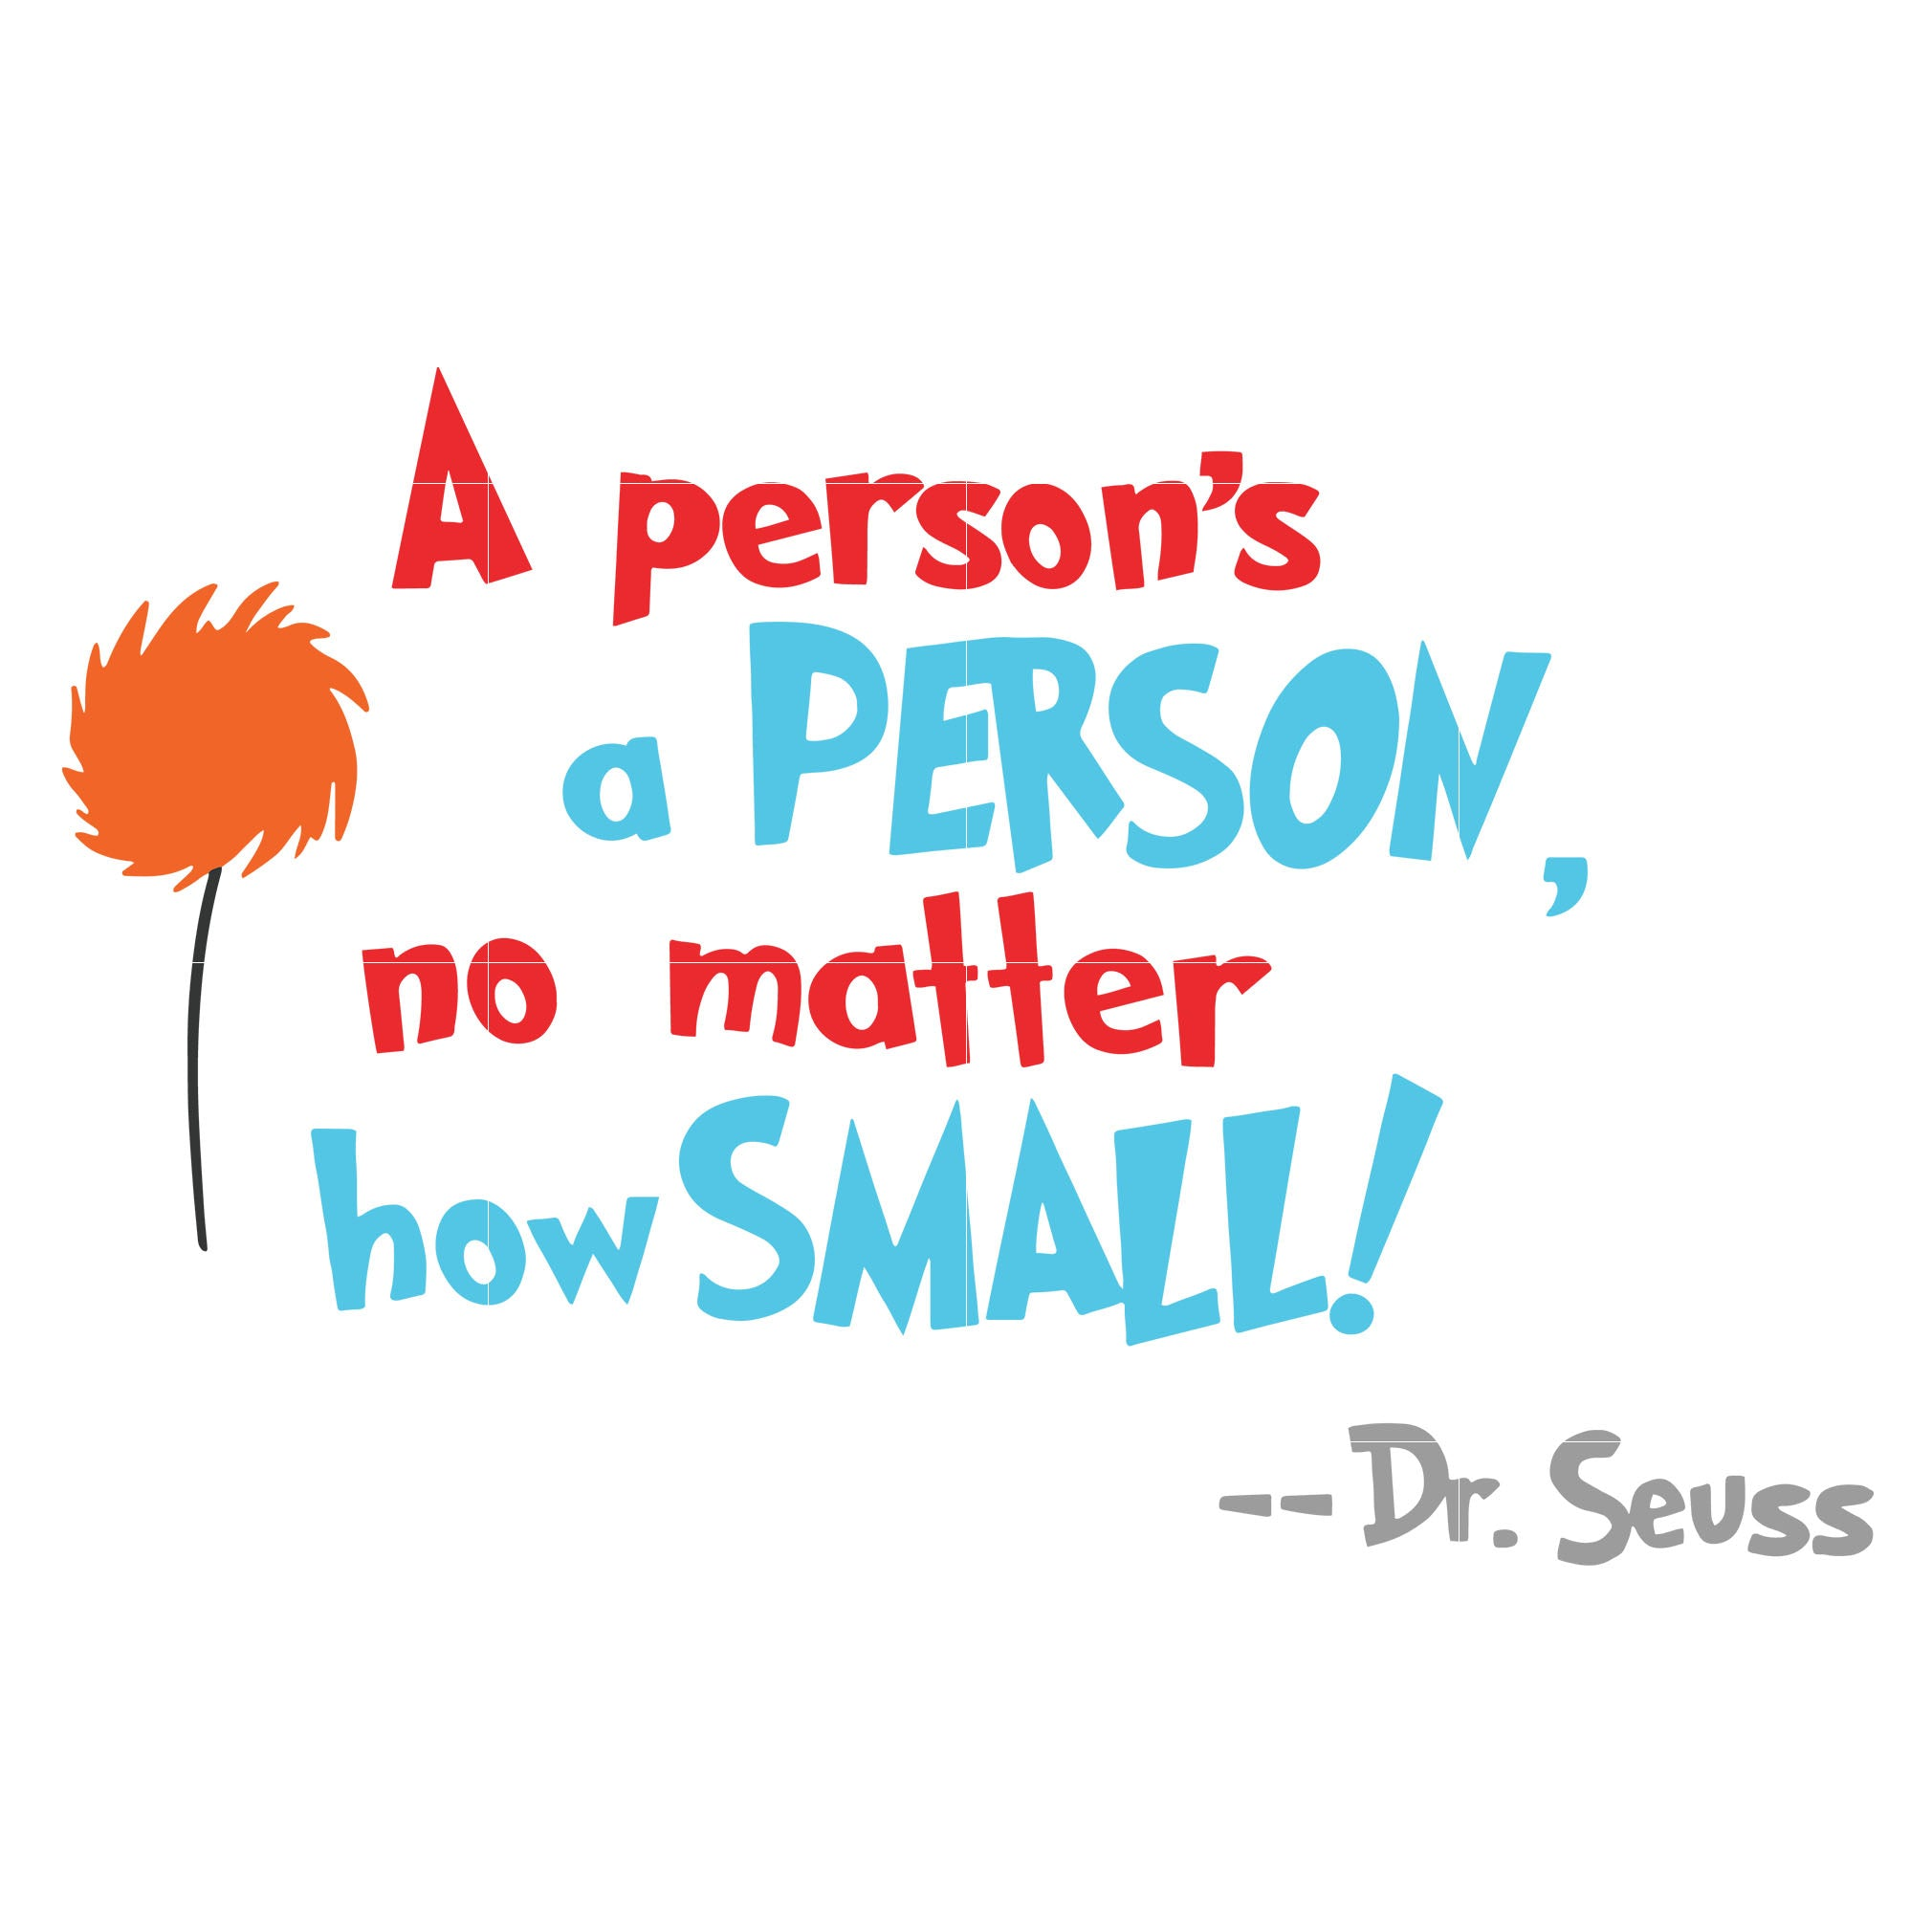 A person's a person no matter how small, dr seuss svg, dr seuss quotes, digital file